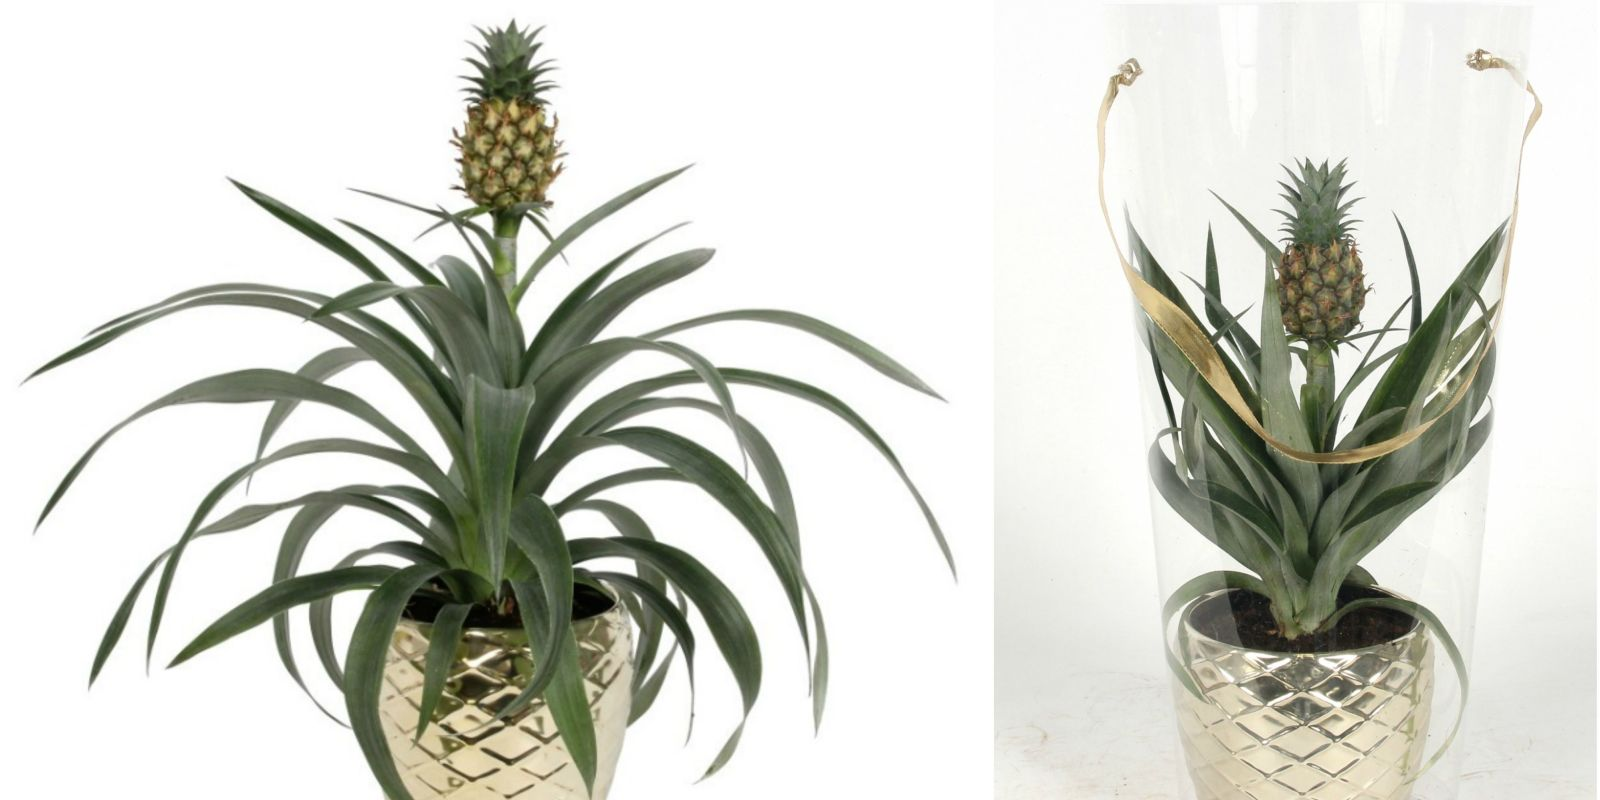 Asda Is Now Selling Pineapple Plants For 163 12 Asda Plants